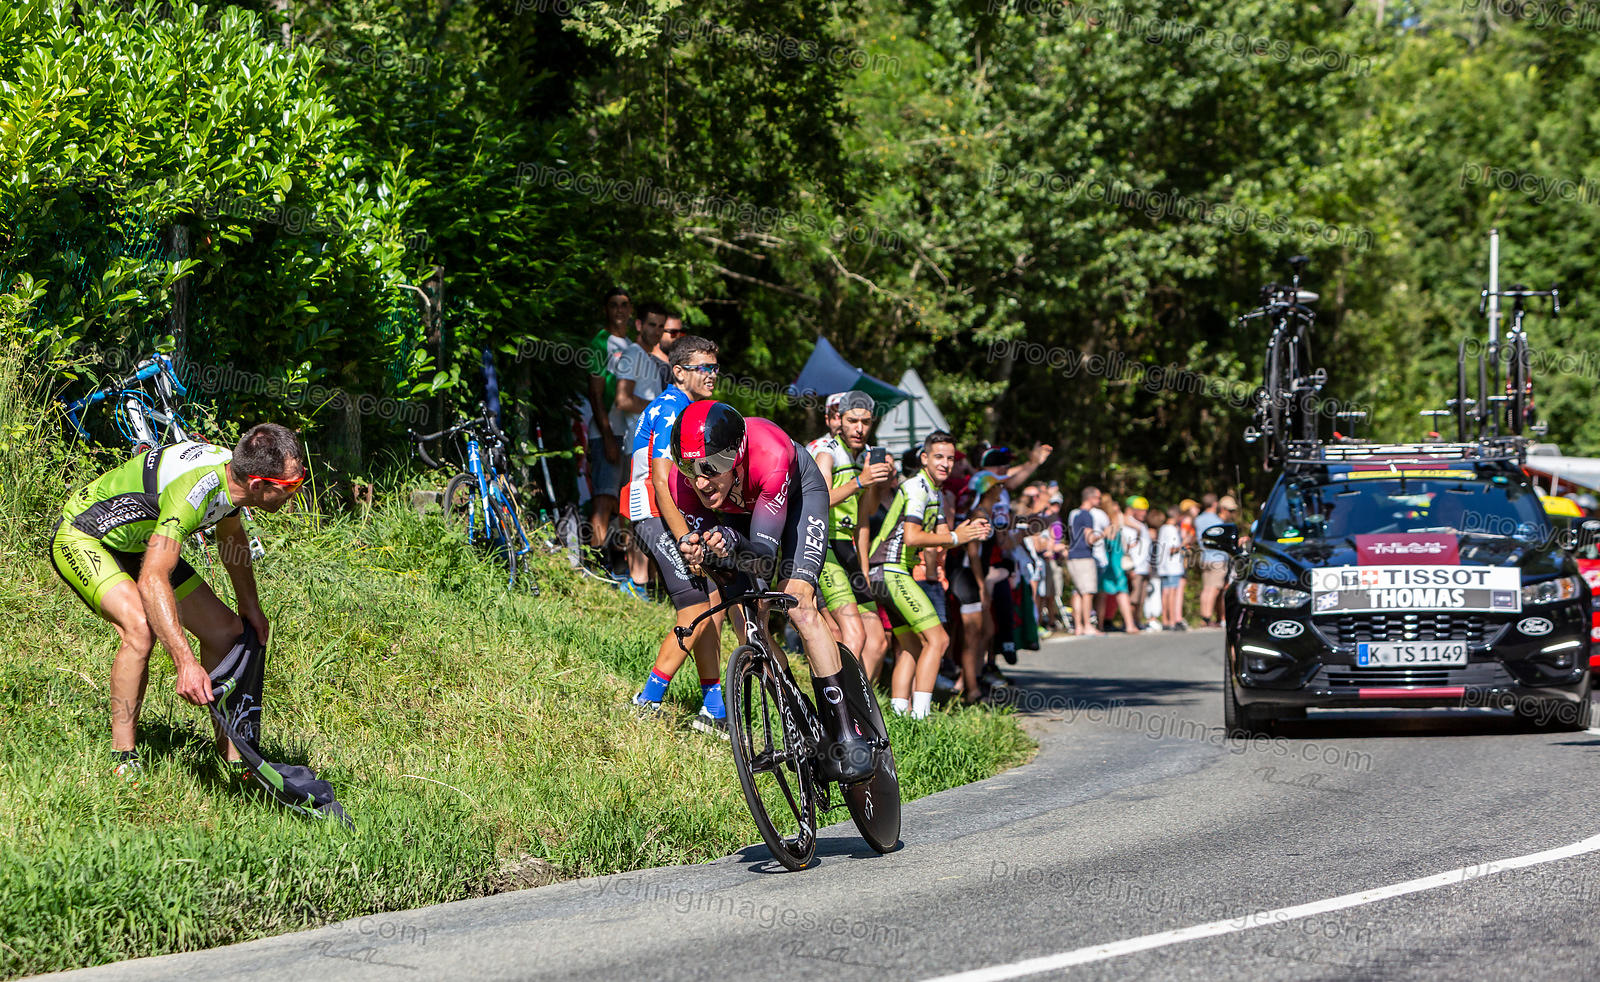 The Cyclist Geraint Thomas - Tour de France 2019